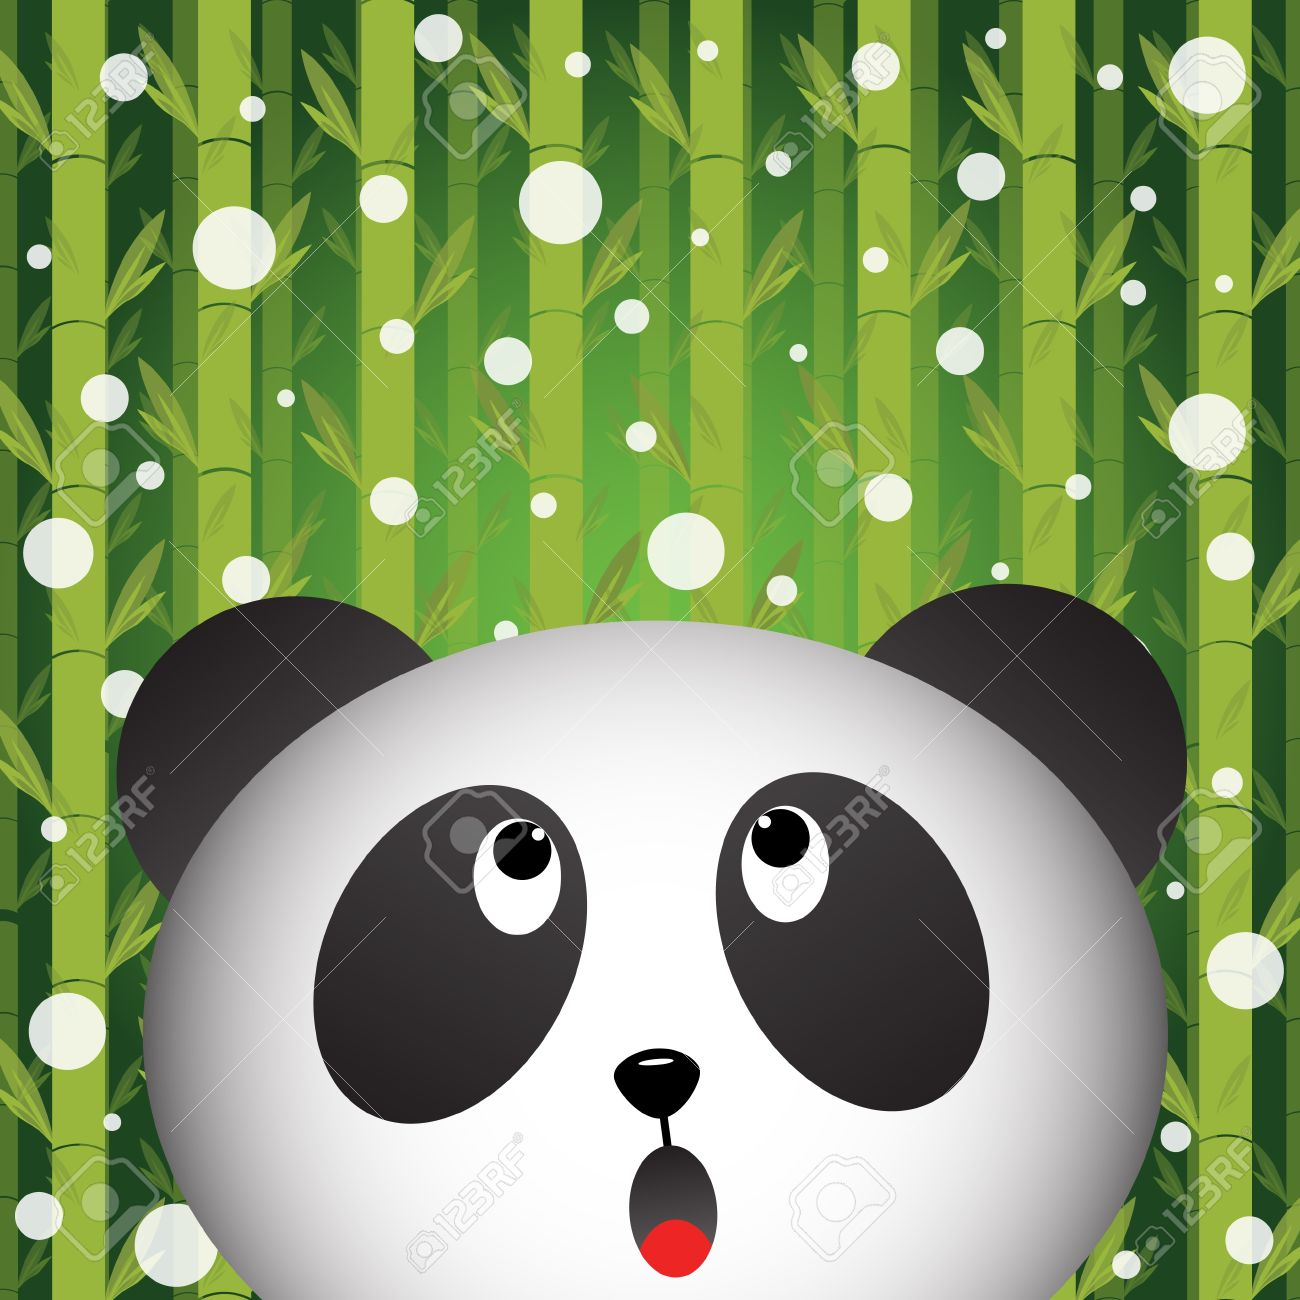 Panda And Snow On Bamboo Background Royalty Free Cliparts Vectors